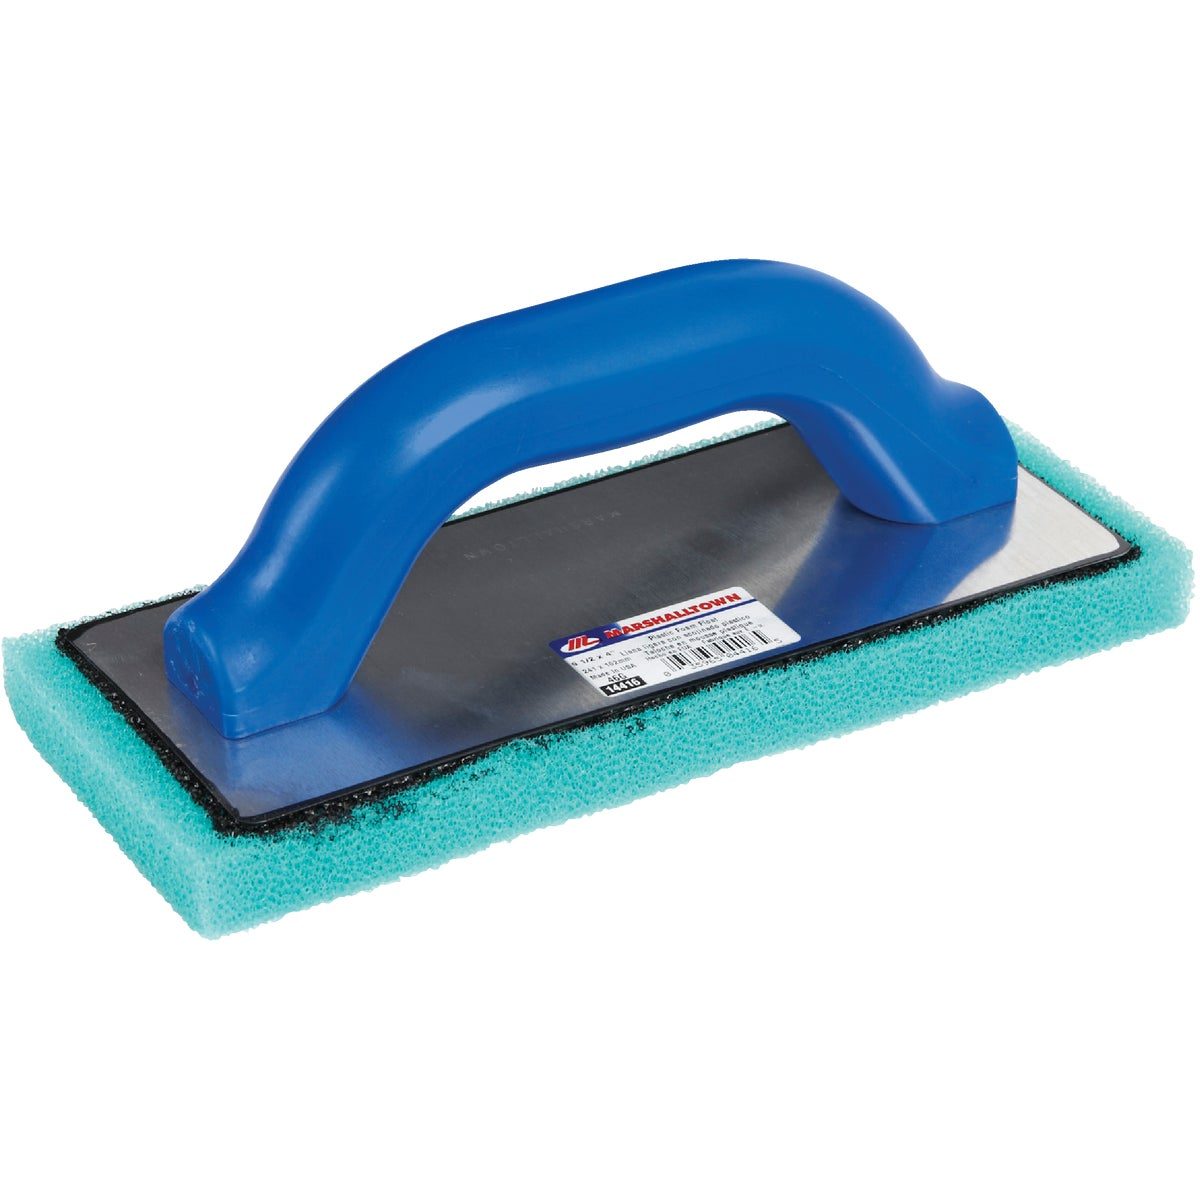 "9-1/2""PLASTIC FOAM FLOAT - 14416 by Marshalltown Trowel"